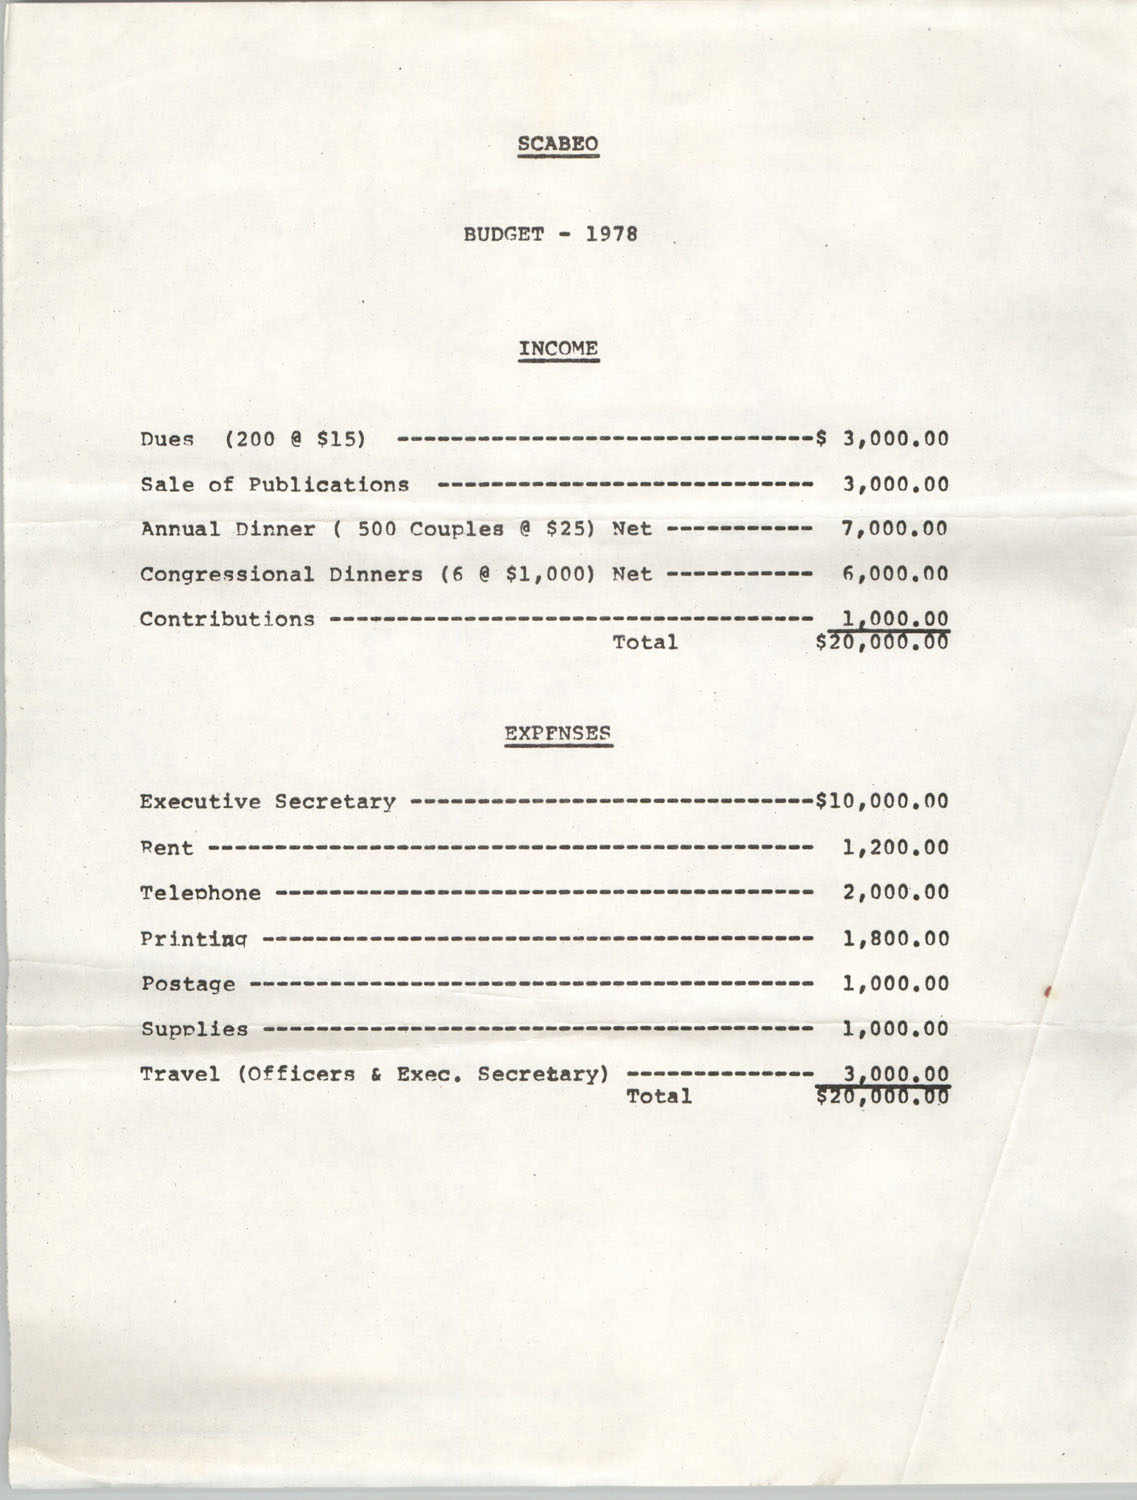 S.C. Association of Black Elected Officials Budget, 1978